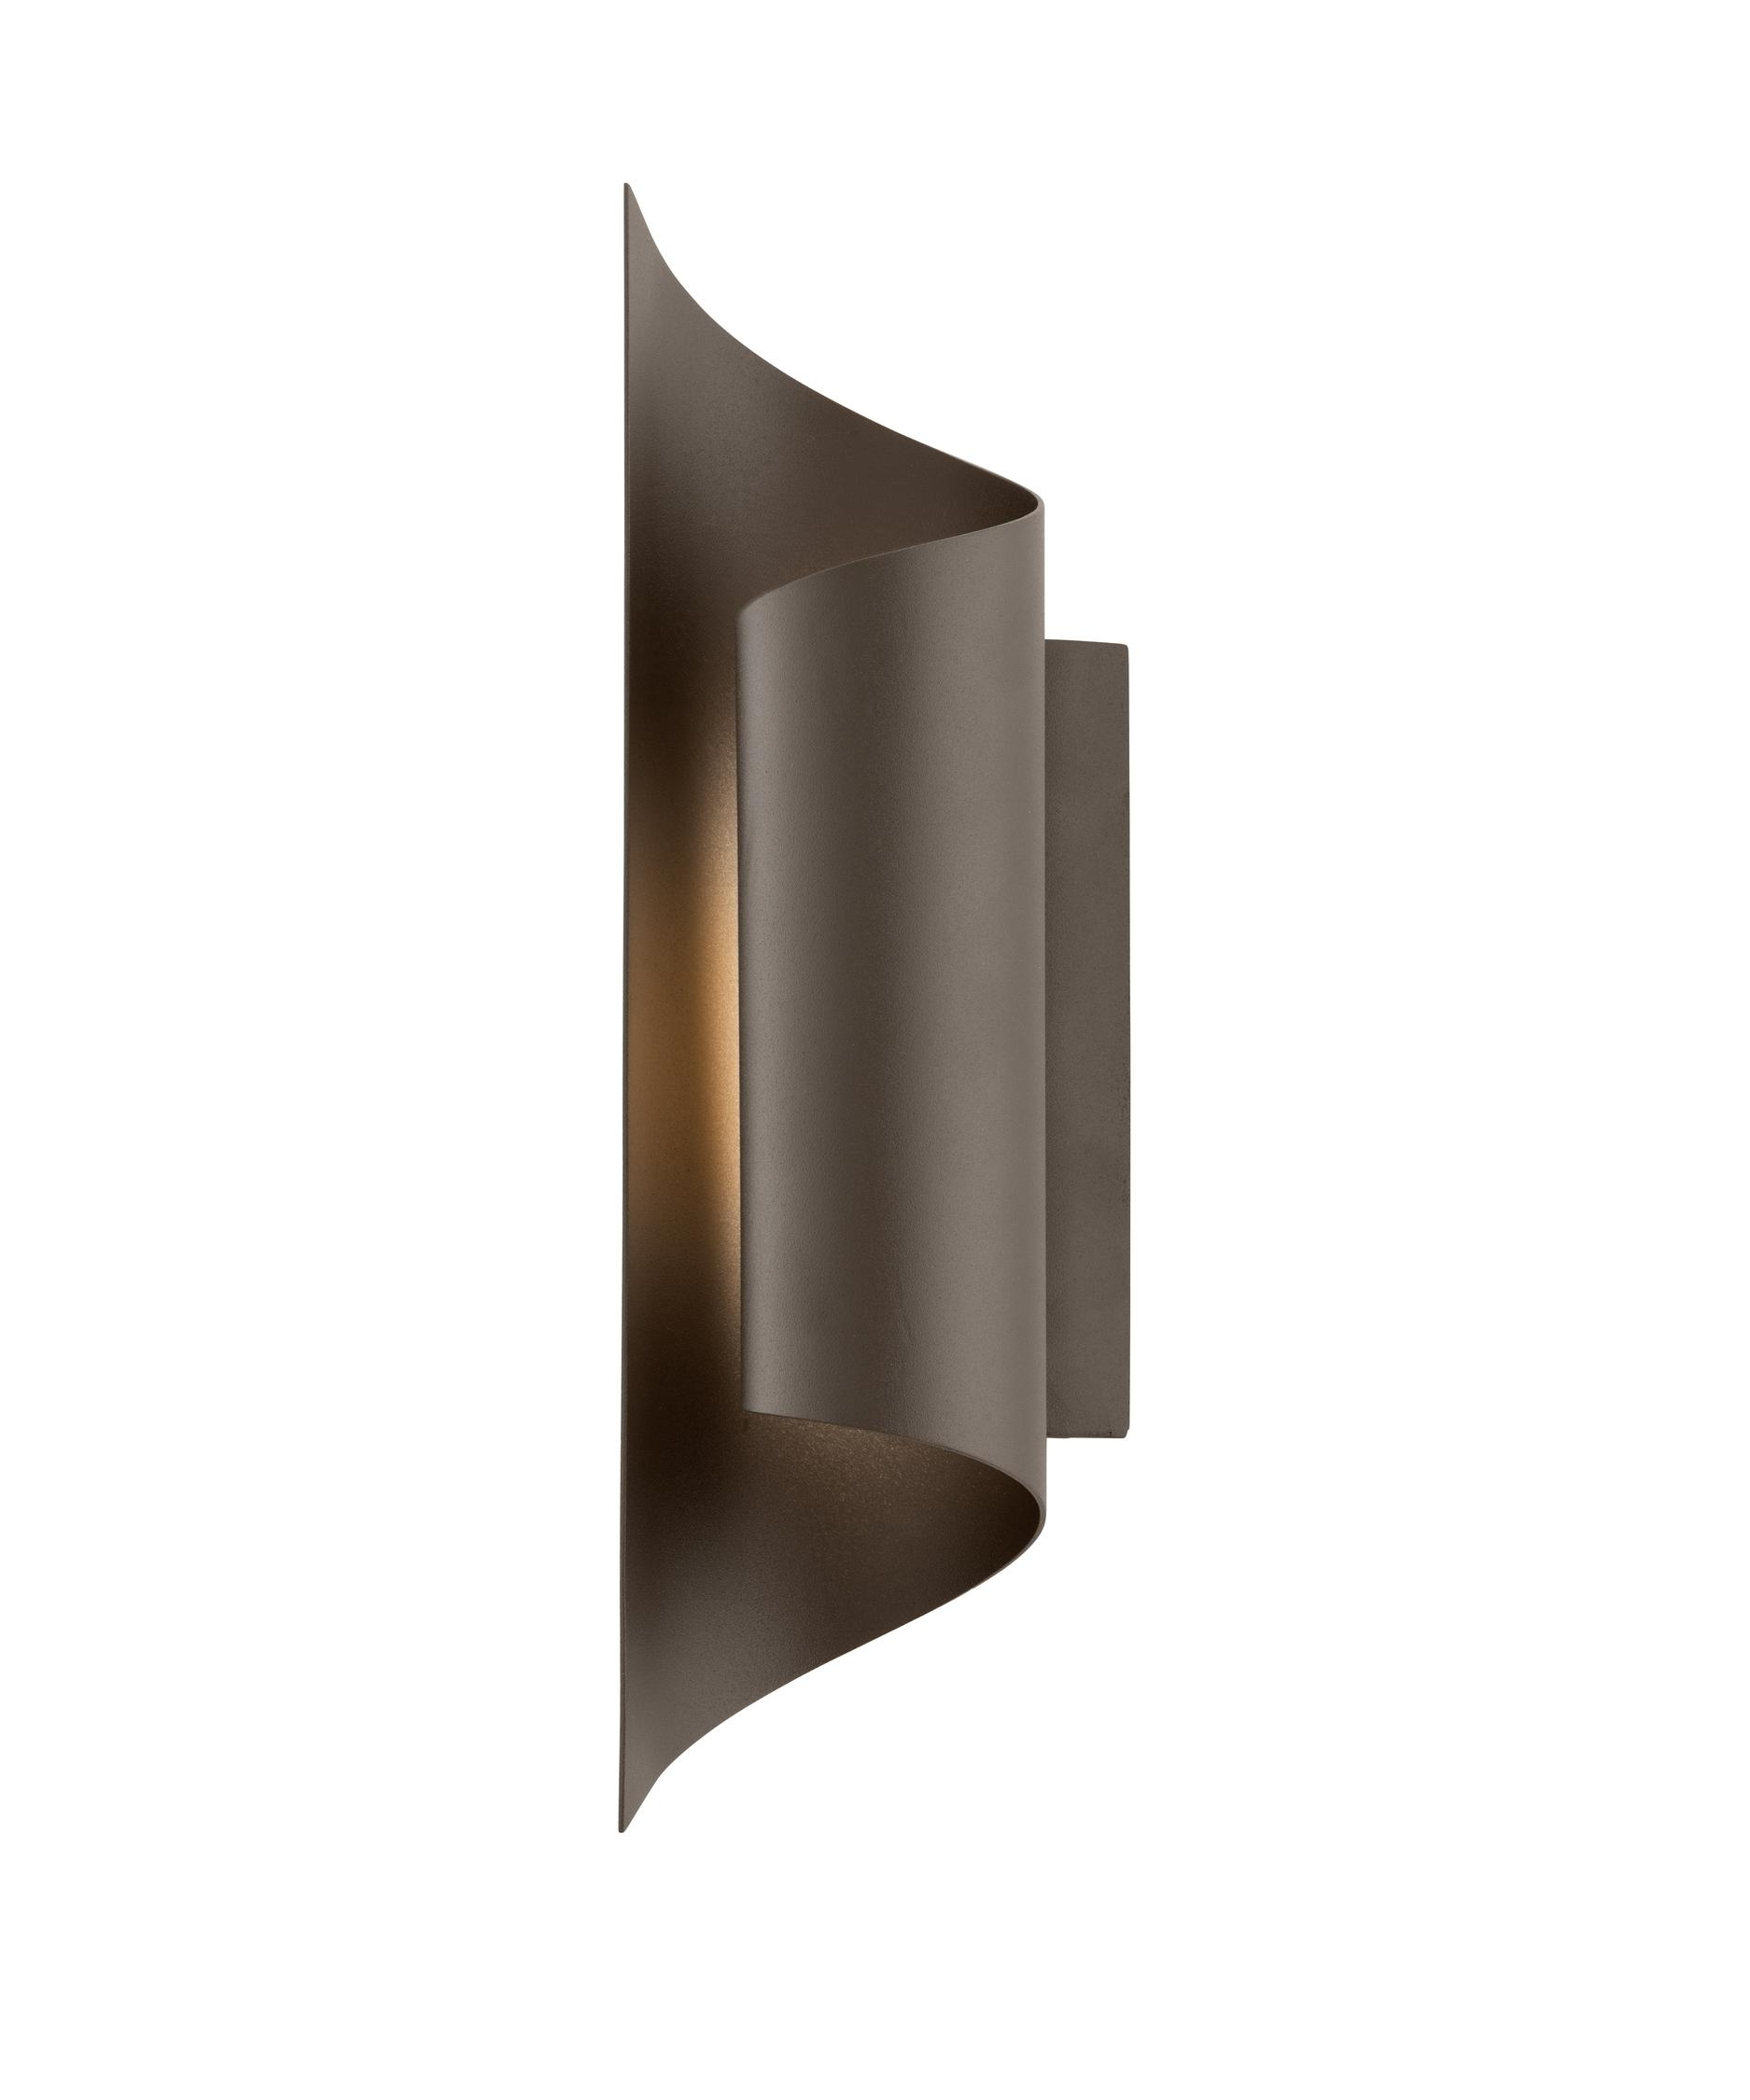 Troy Lighting Bl3381 Kinetic 4 Inch Wide 8 Light Outdoor Wall Light Intended For Fashionable Outdoor Wall Lighting (View 16 of 20)